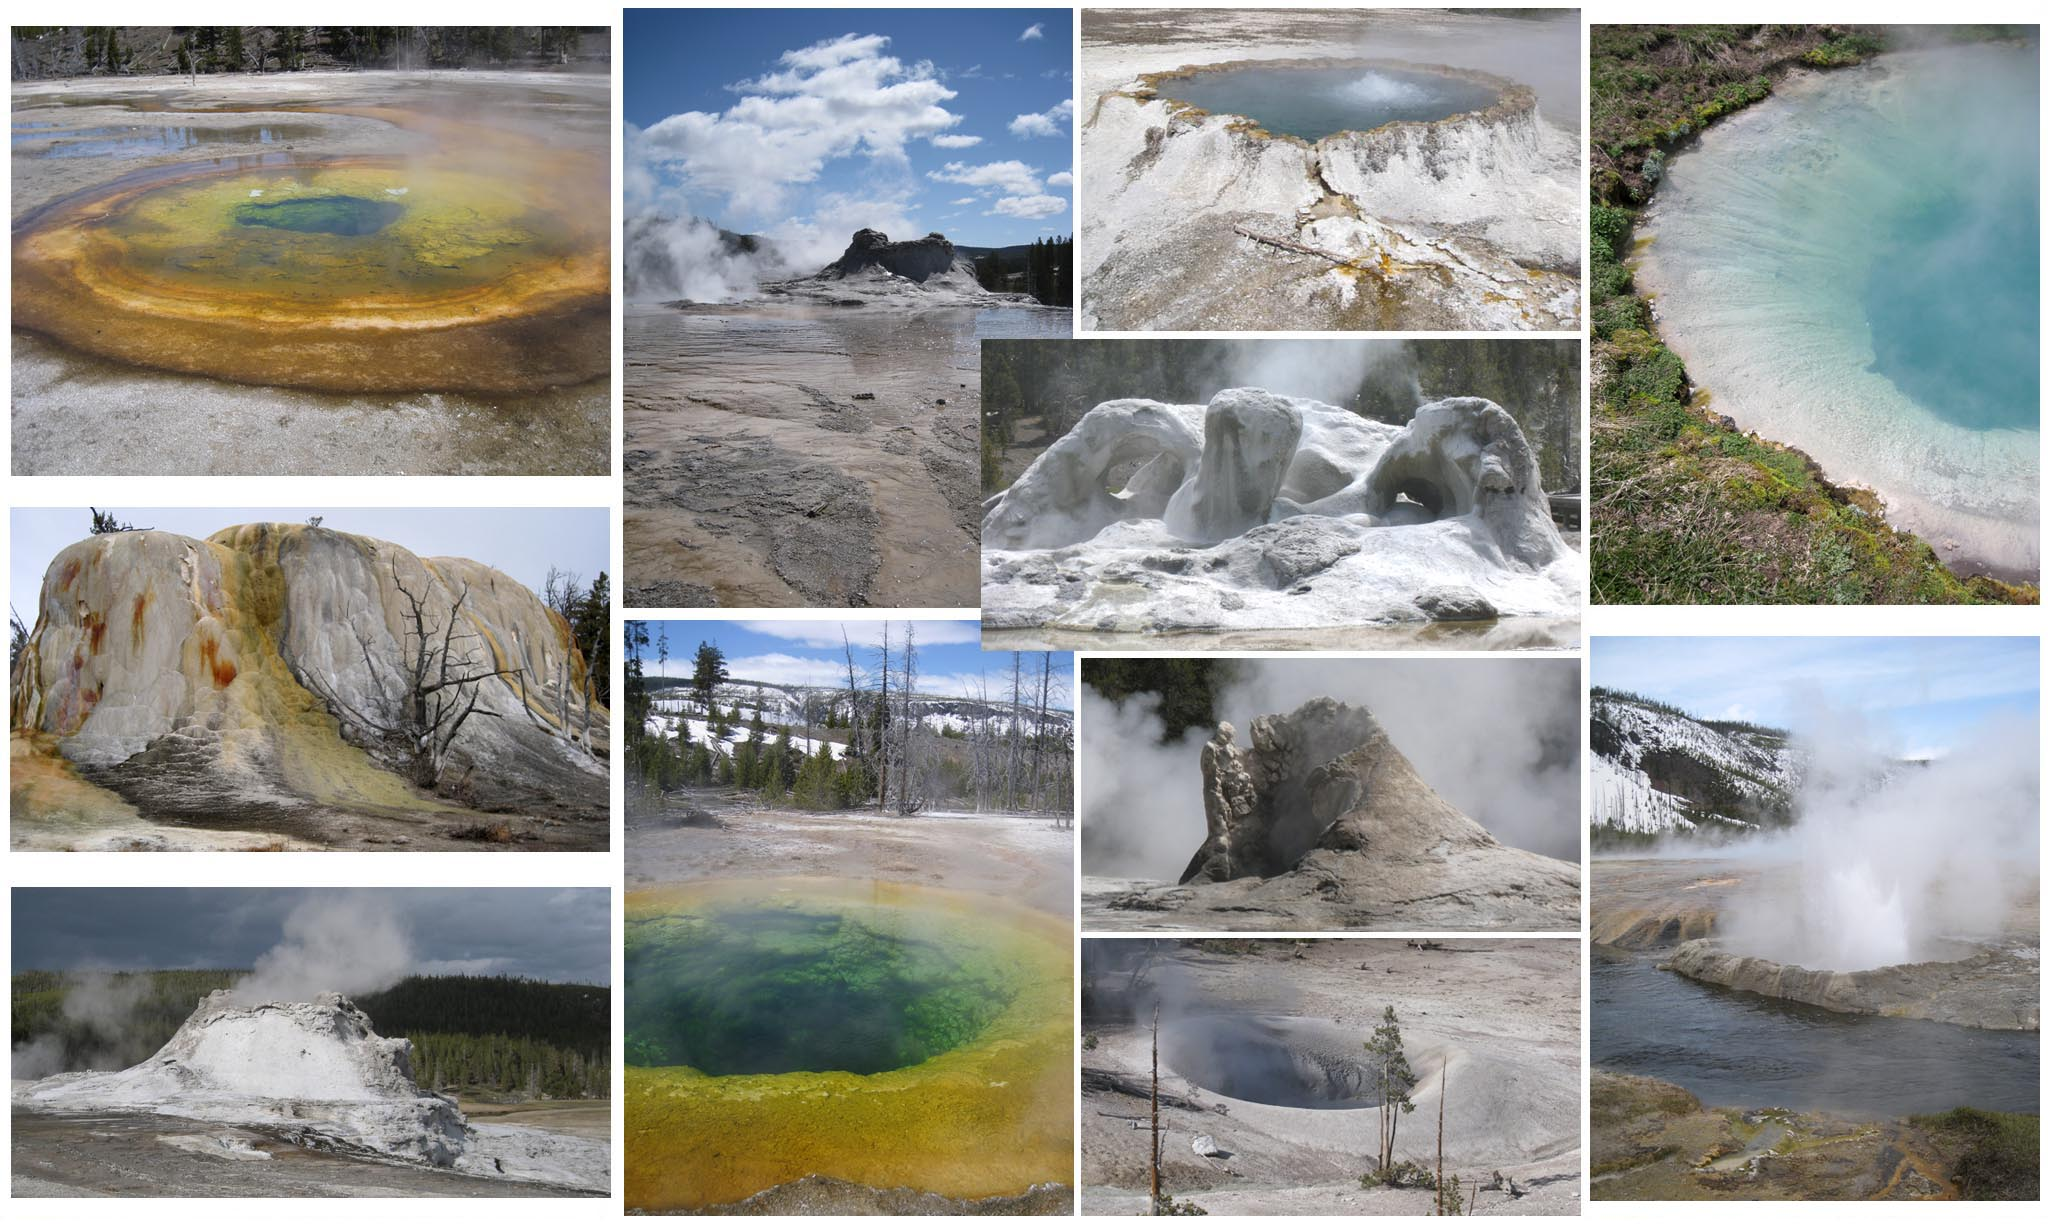 USA - Wyoming - Yellowstone National Park  //  Geysers, Pools, and Fumaroles